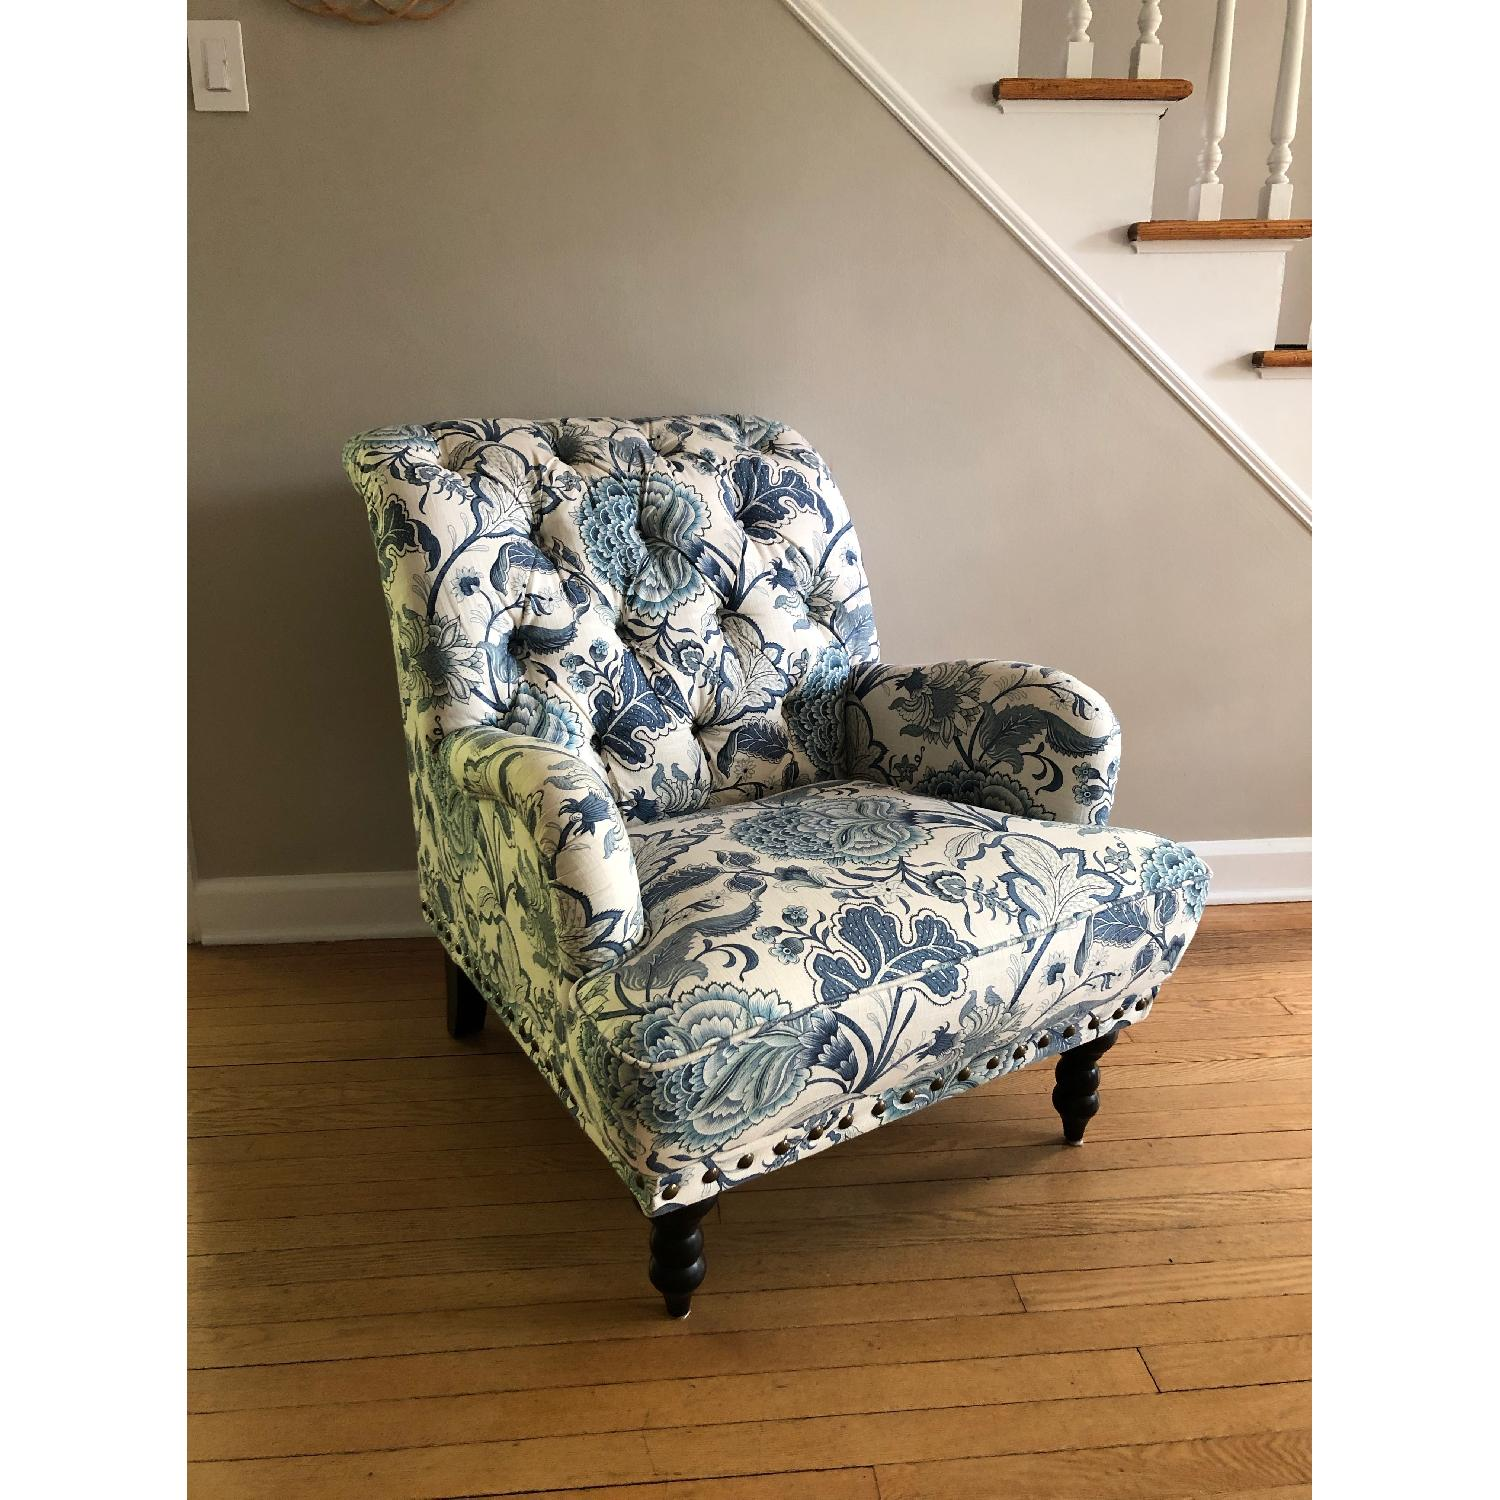 Pier 1 Chas Indigo Blue Floral Chairs - image-1